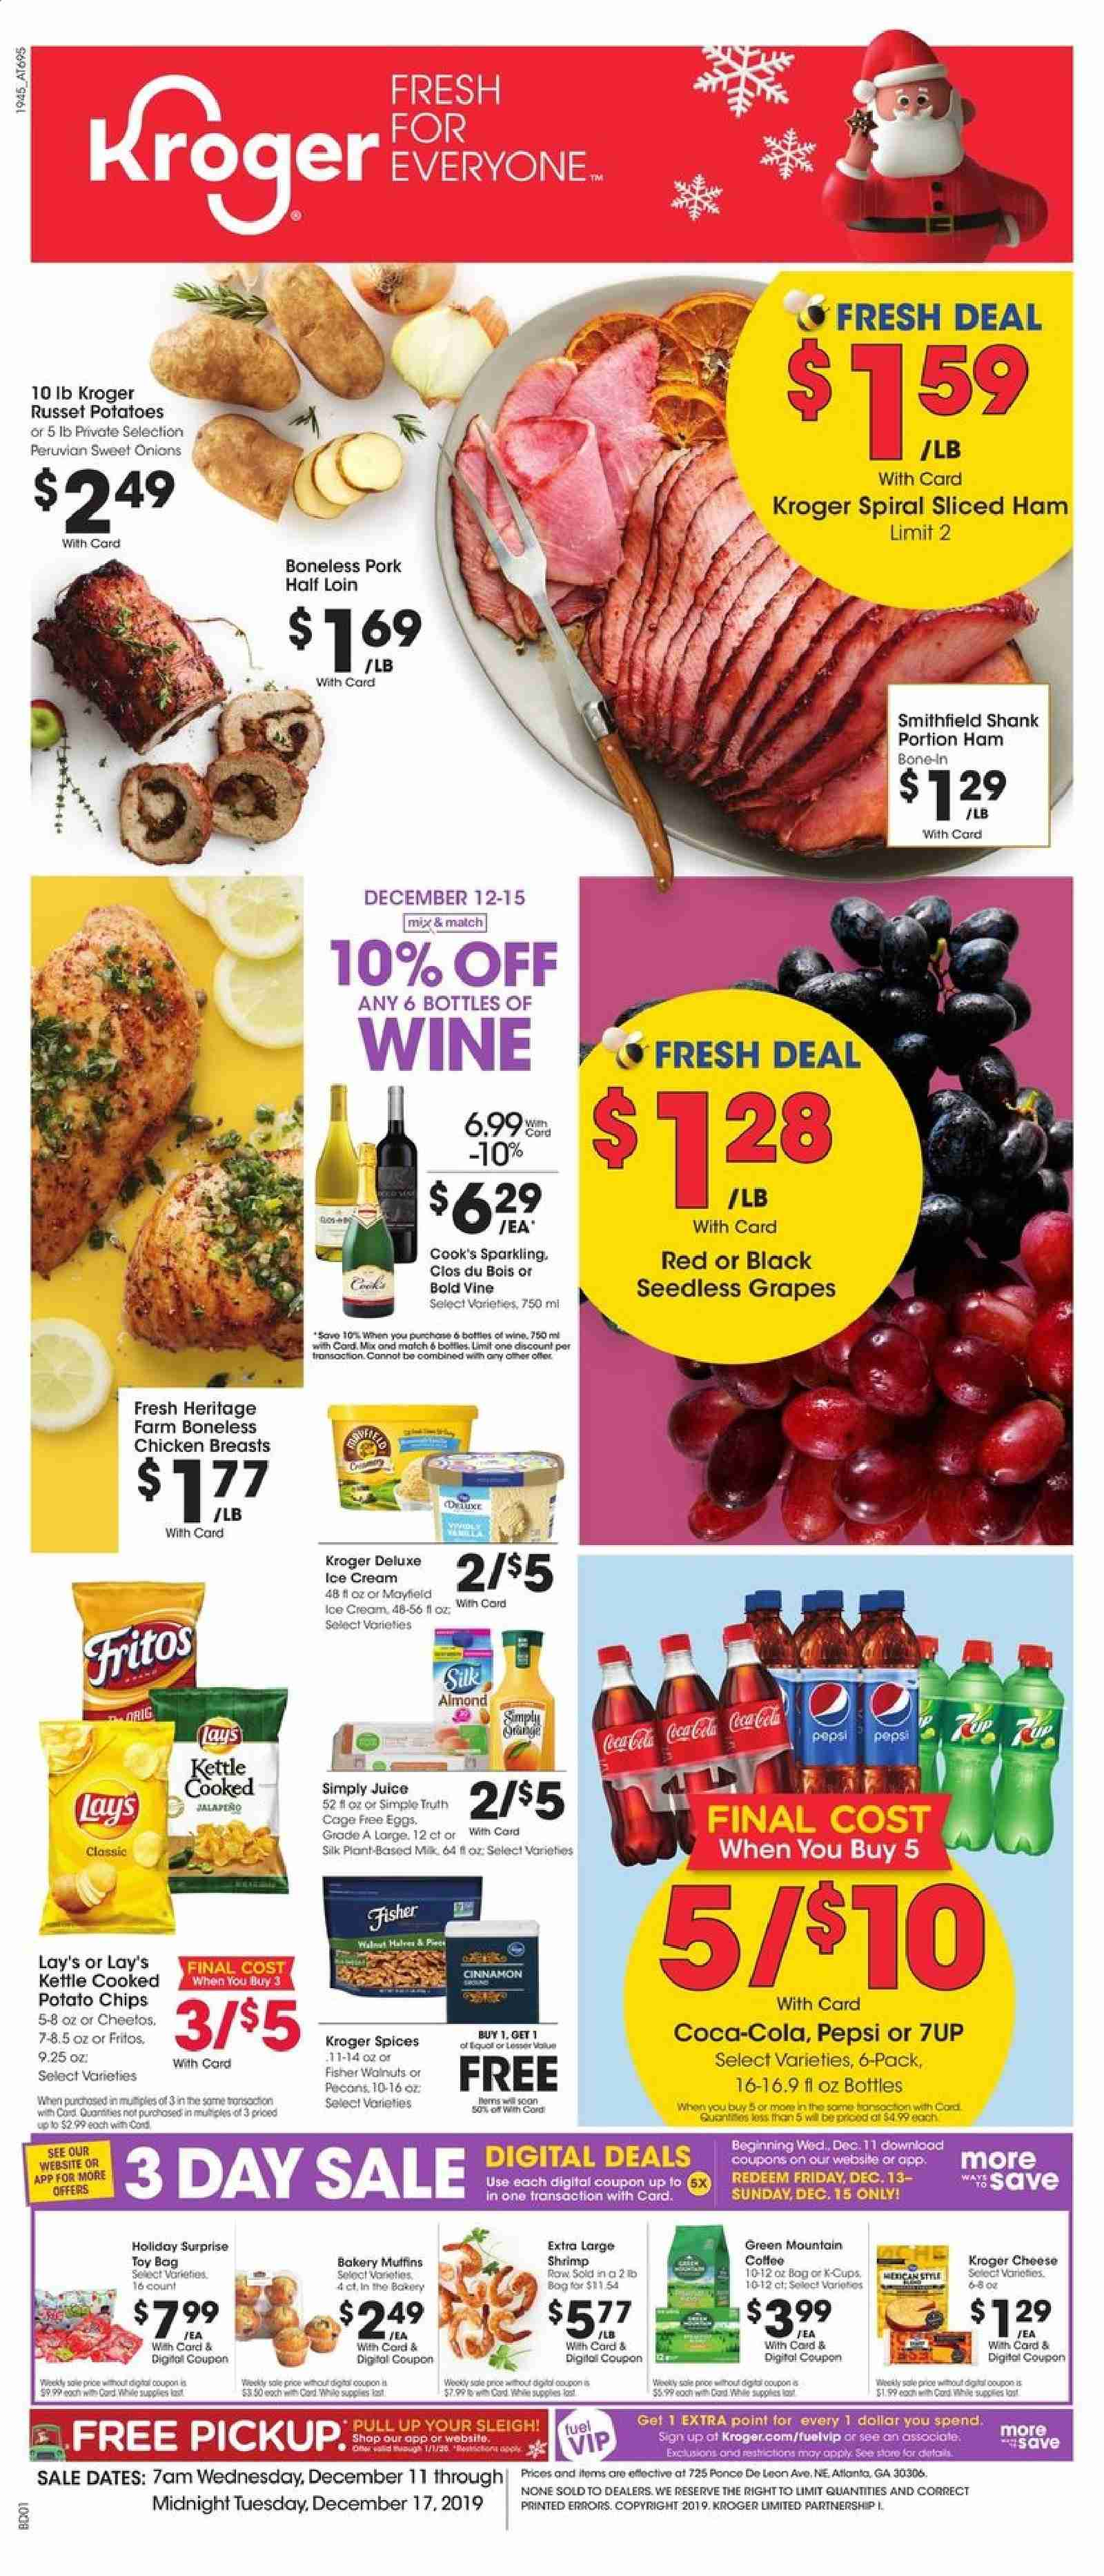 Kroger Flyer - 12.11.2019 - 12.17.2019 - Sales products - coca-cola, coffee, dates, eggs, fritos, fuel, grapes, milk, russet potatoes, seedless grapes, shrimp, sole, ham, ice cream, pork meat, potato chips, potatoes, cheetos, chicken, chicken breast, pepsi, onion, chips, toys, cheese, juice, lay's, wine, jalapeno, cream. Page 1.